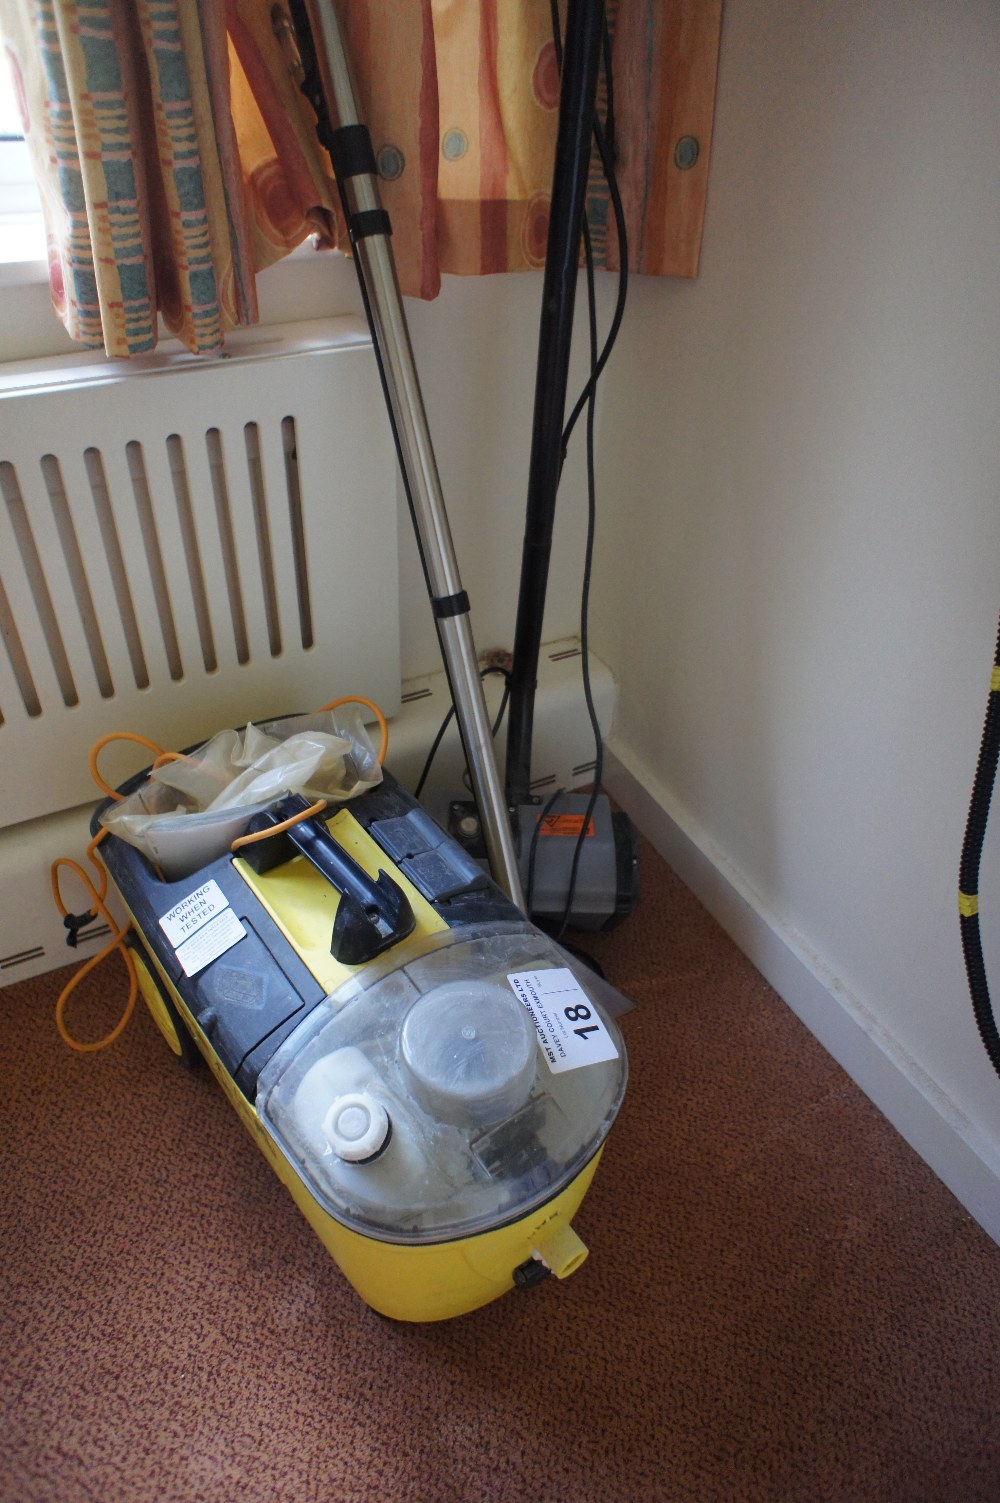 Lot 18 - NB: this is a carpet cleaner not a steam cleaner... 1 Karcher puzzi 200 carpet cleaner